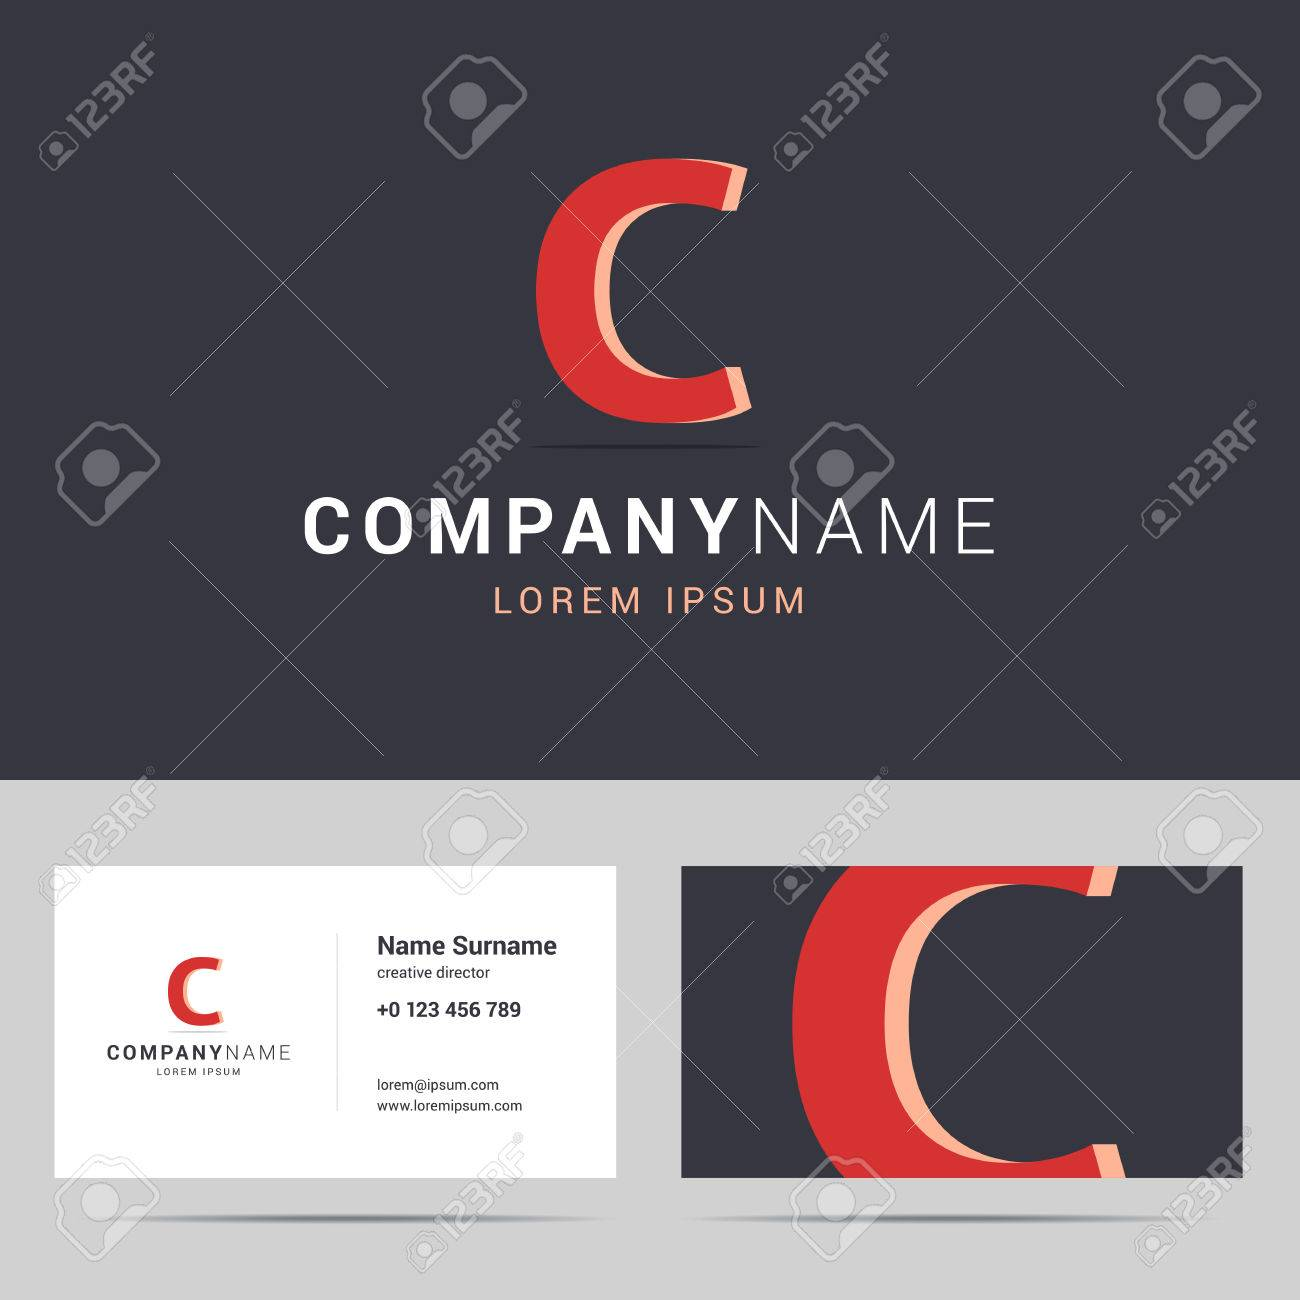 Logotype logo and business card template stylized letter c logotype logo and business card template stylized letter c with 3d effect and shadow cheaphphosting Images